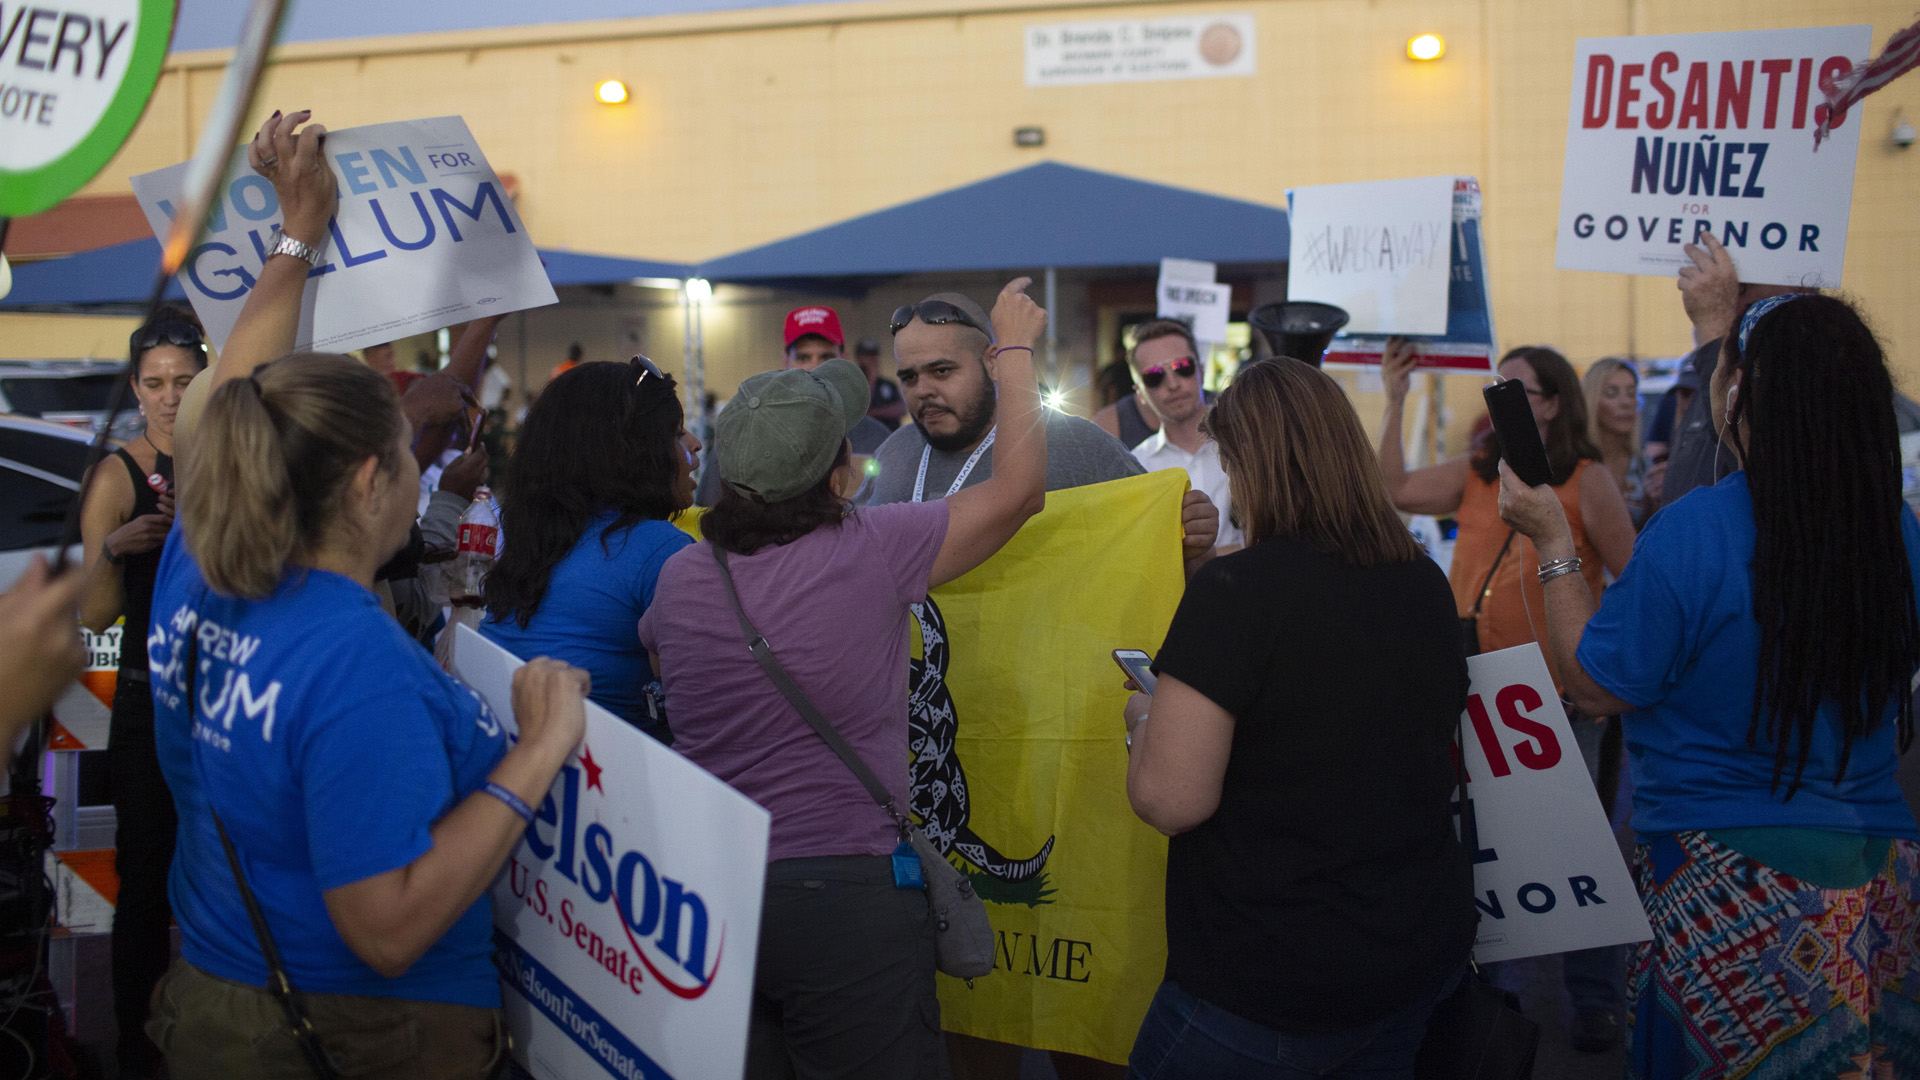 Protesters confront each other outside the Broward County Supervisor of Elections office on Nov. 9, 2018, in Lauderhill, Florida. Both the gubernatorial and Senate races are now heading to a recount. (Credit: Saul Martinez/Getty Images)